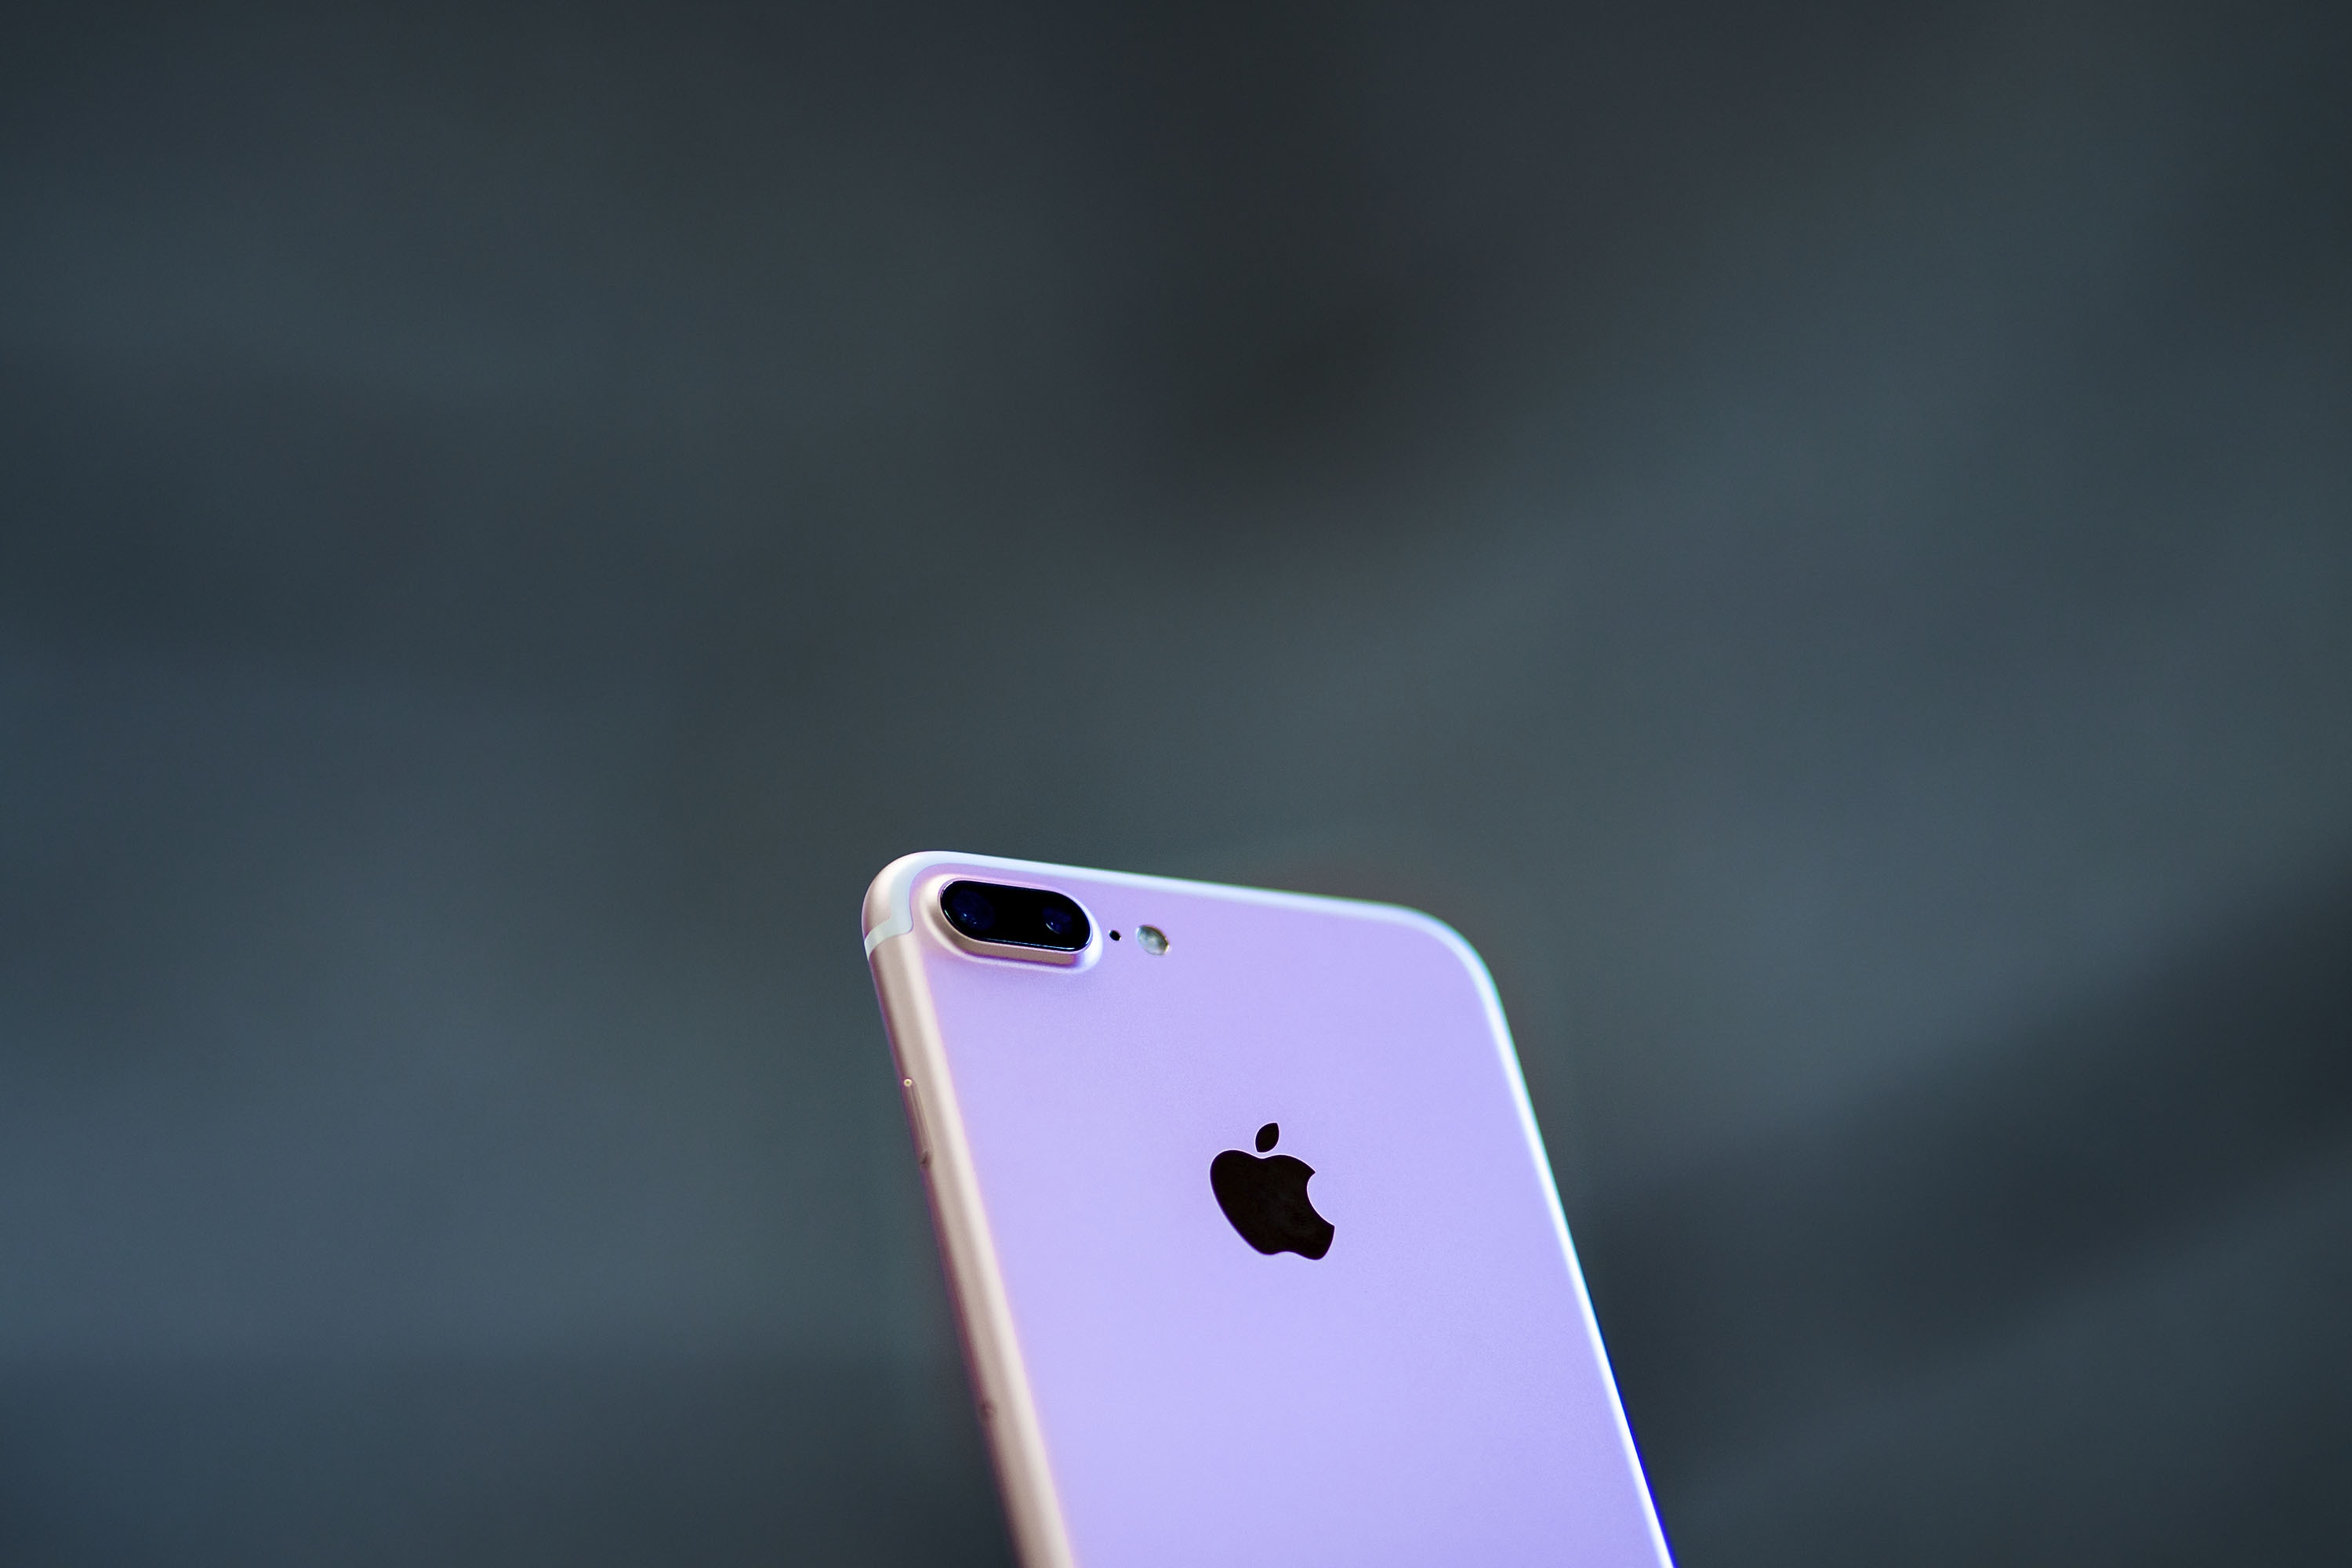 An iPhone 7 Plus with its new dual camera is displayed at Puerta del Sol Apple Store the day the company launches their Iphone 7 and 7 Plus on September 16, 2016 in Madrid, Spain.